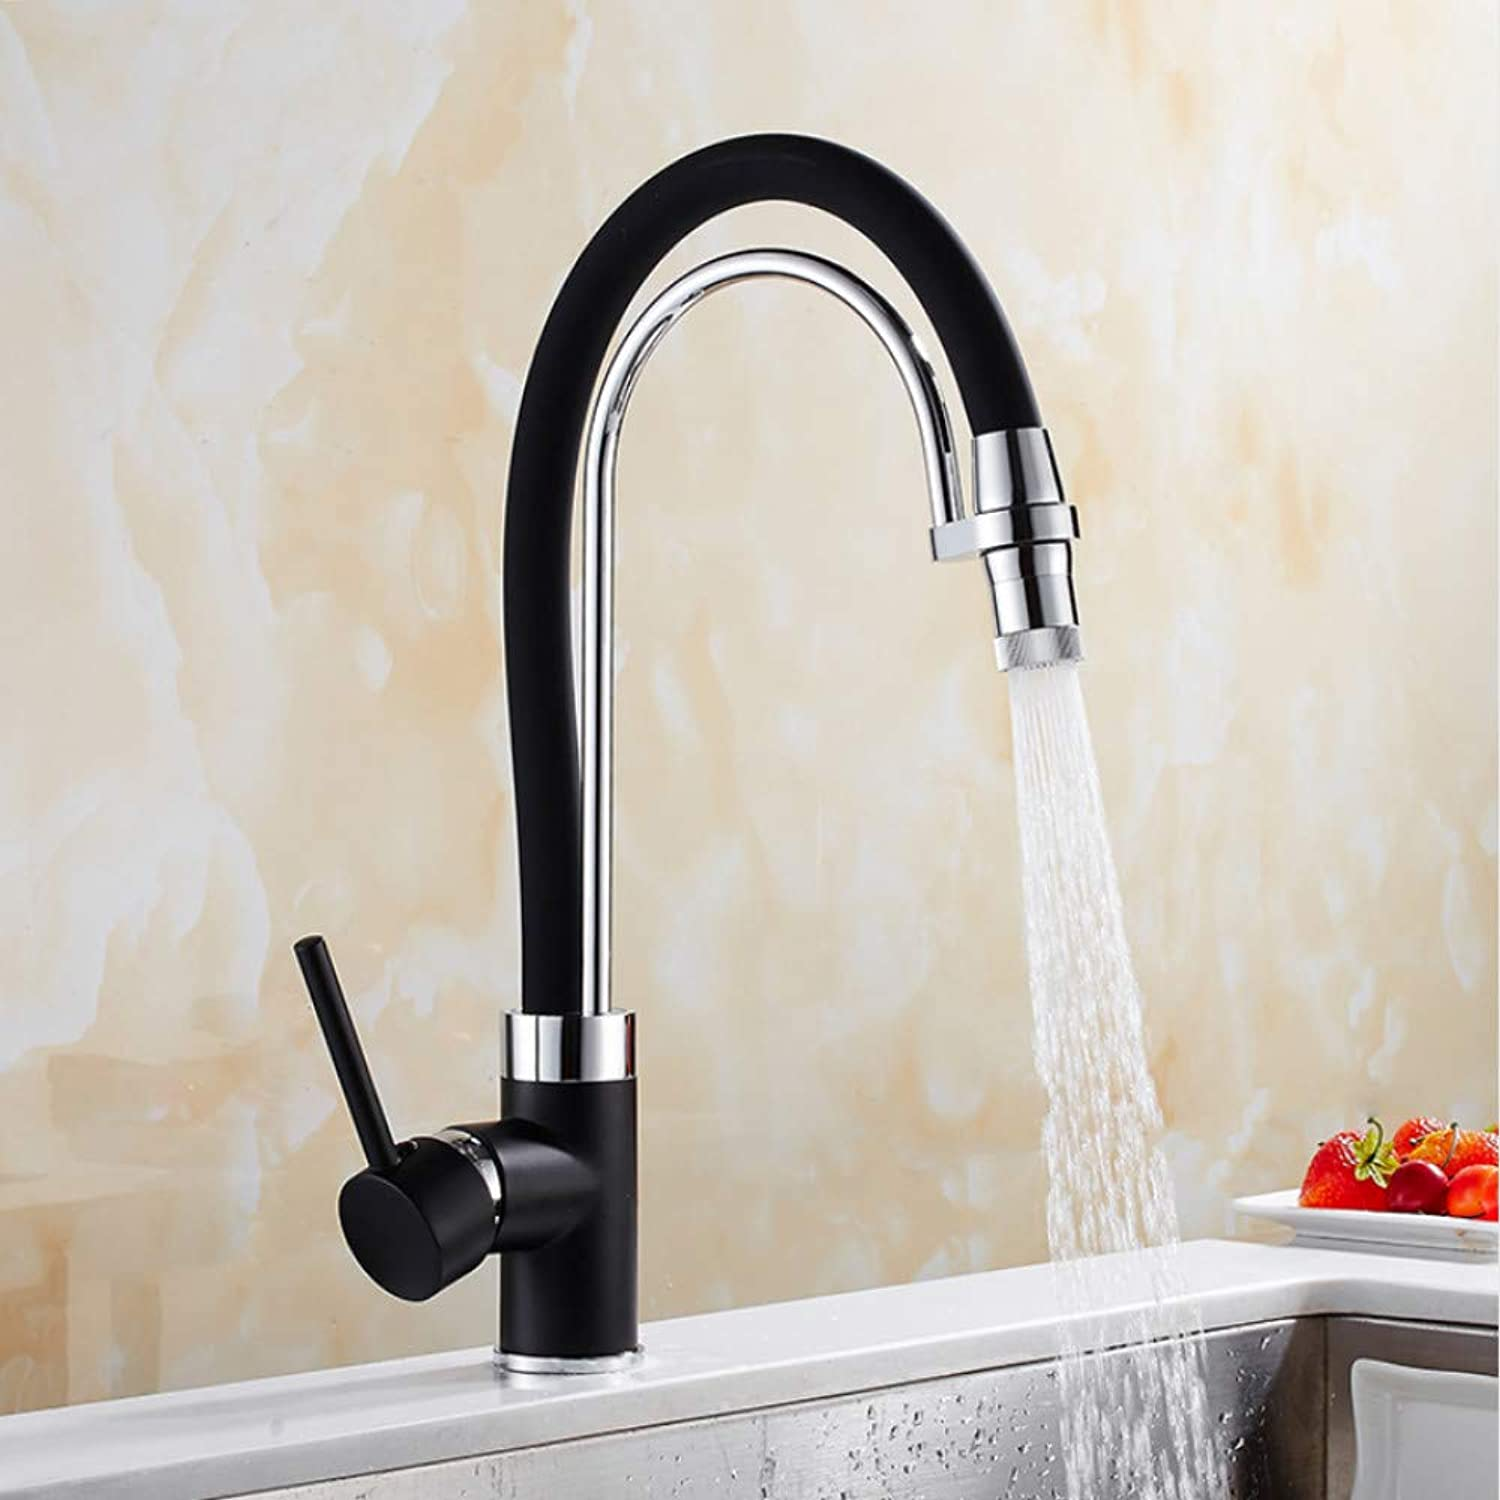 Lddpl Tap New Arrival Black Kitchen Faucet Single Hole Deck Mounted Faucet Pull Down Kitchen Sink Tap